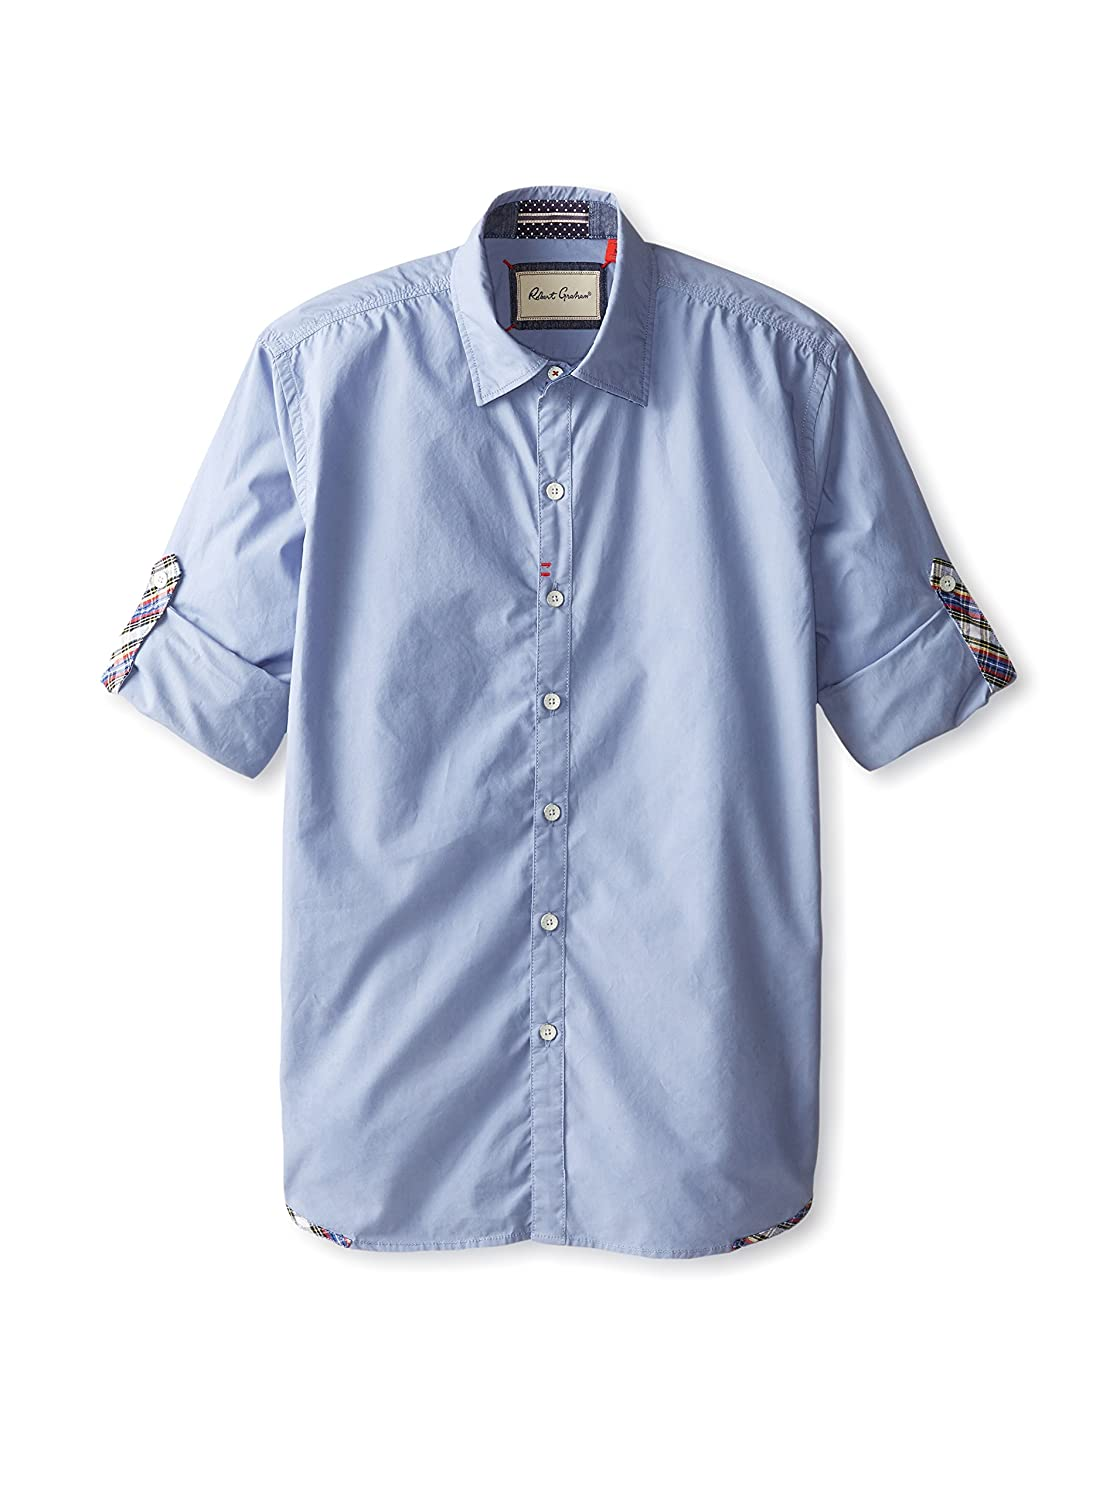 Robert Graham Shirt SERENDIPITY, Color: Blue